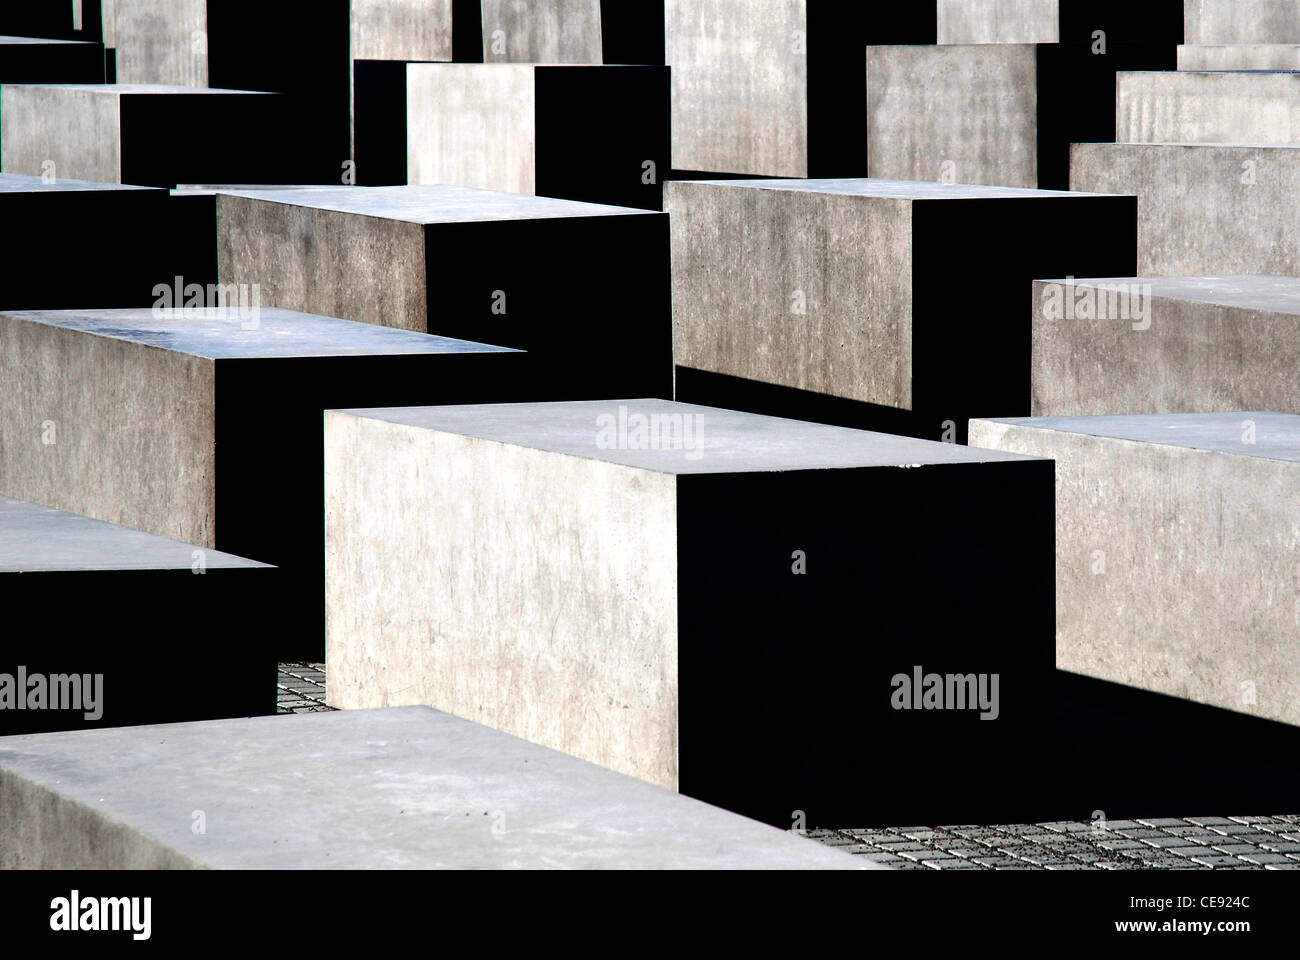 Memorial to the Murdered Jews of Europe in Berlin. Stock Photo